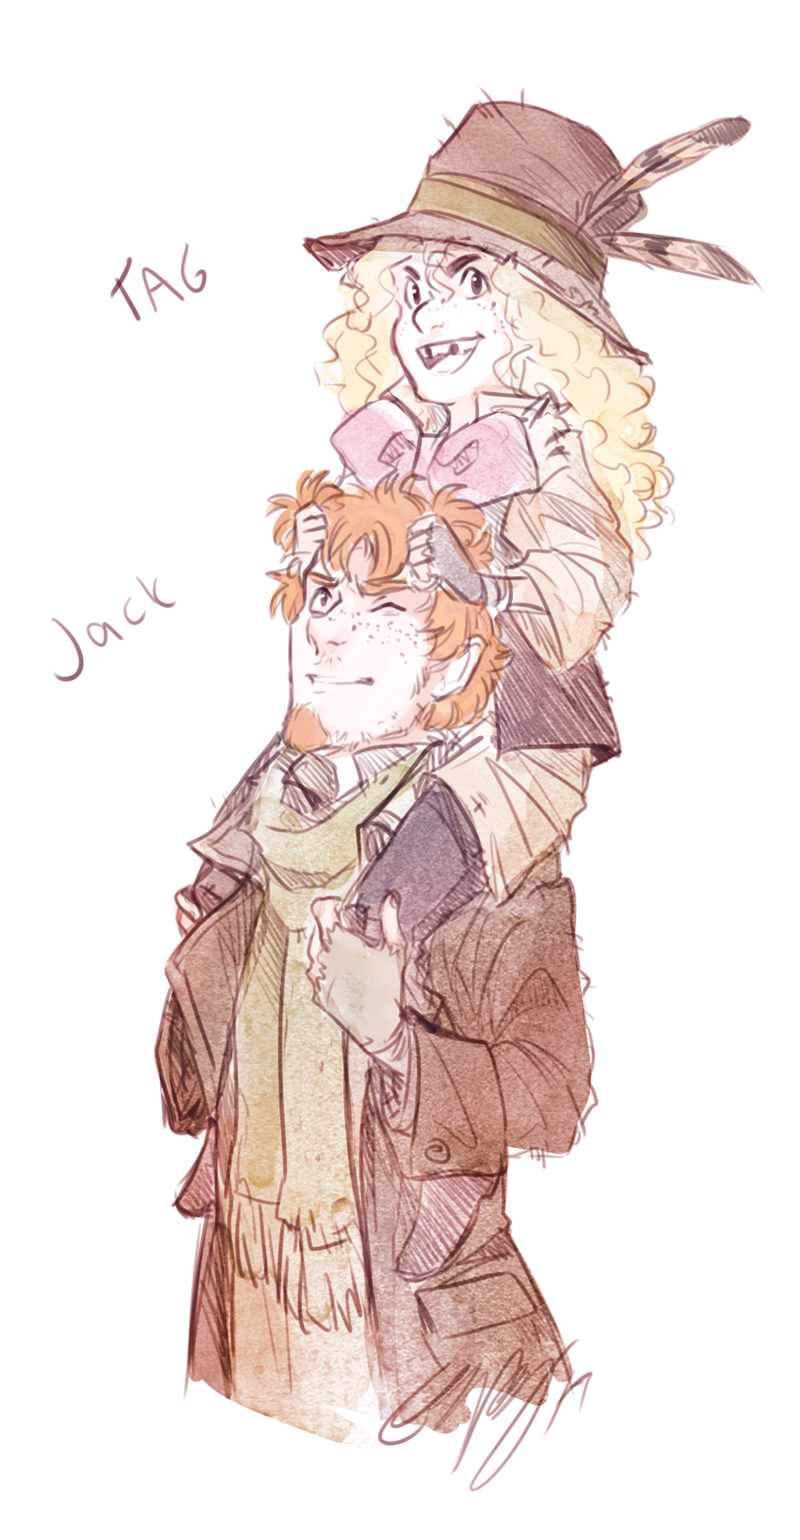 Tistow - Tag and Jack by ElliPuukangas